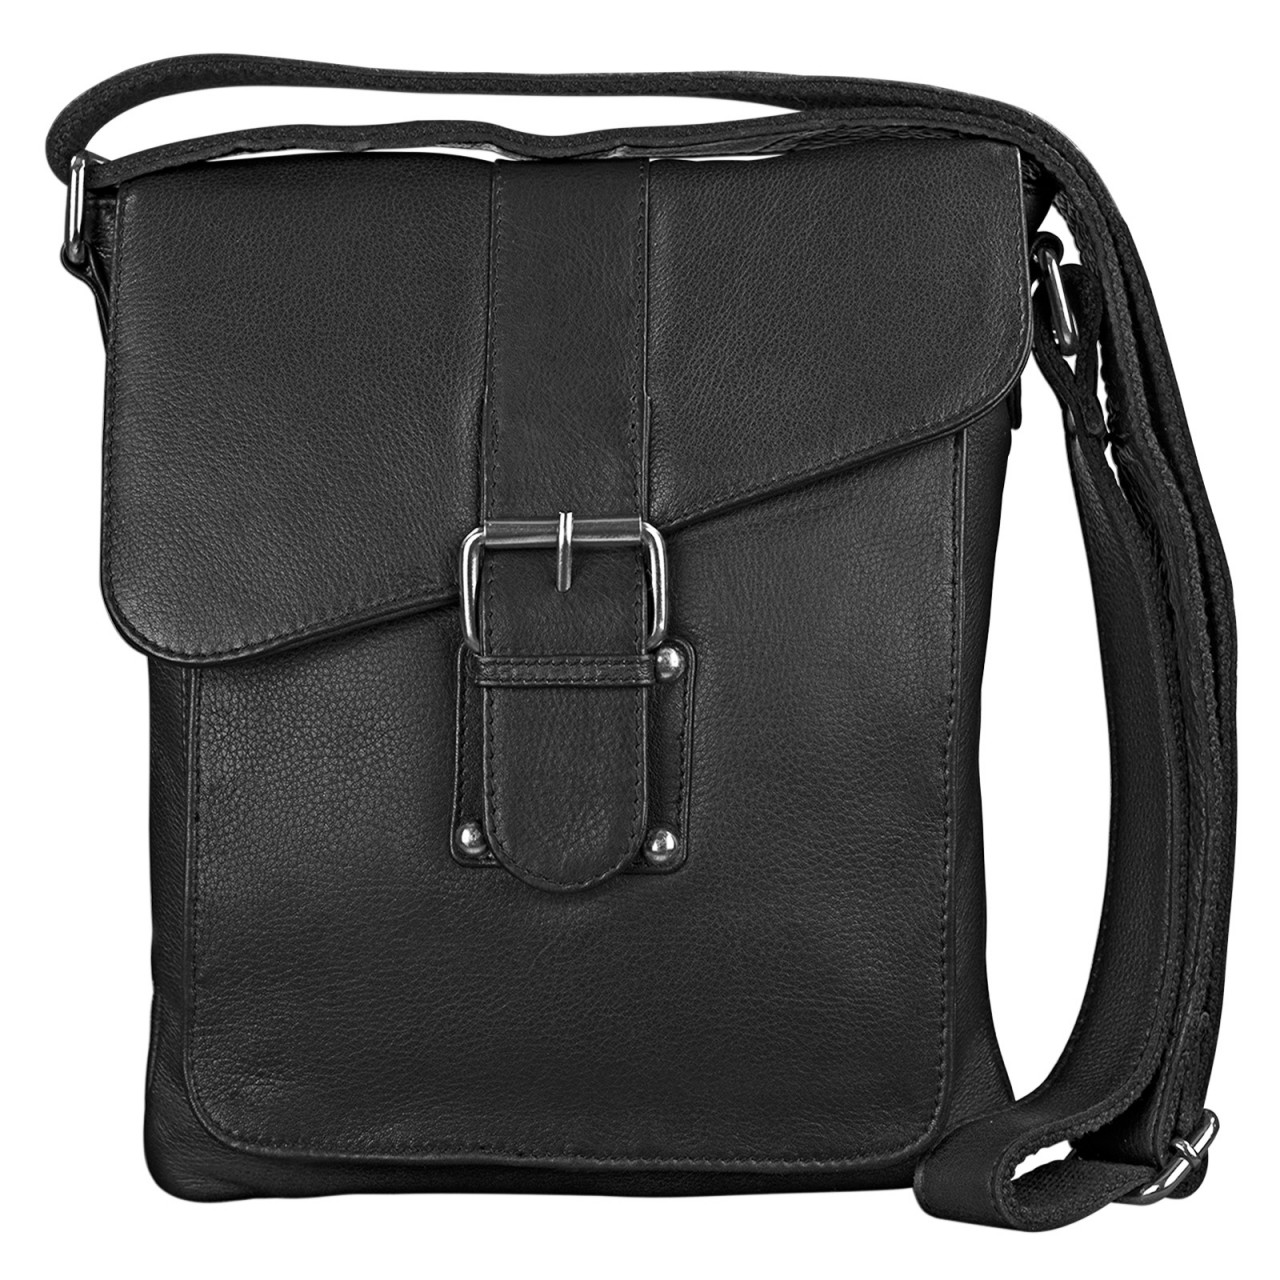 stilord herren umh ngetasche leder schwarz klein schultertasche messenger bag 10 1 zoll. Black Bedroom Furniture Sets. Home Design Ideas